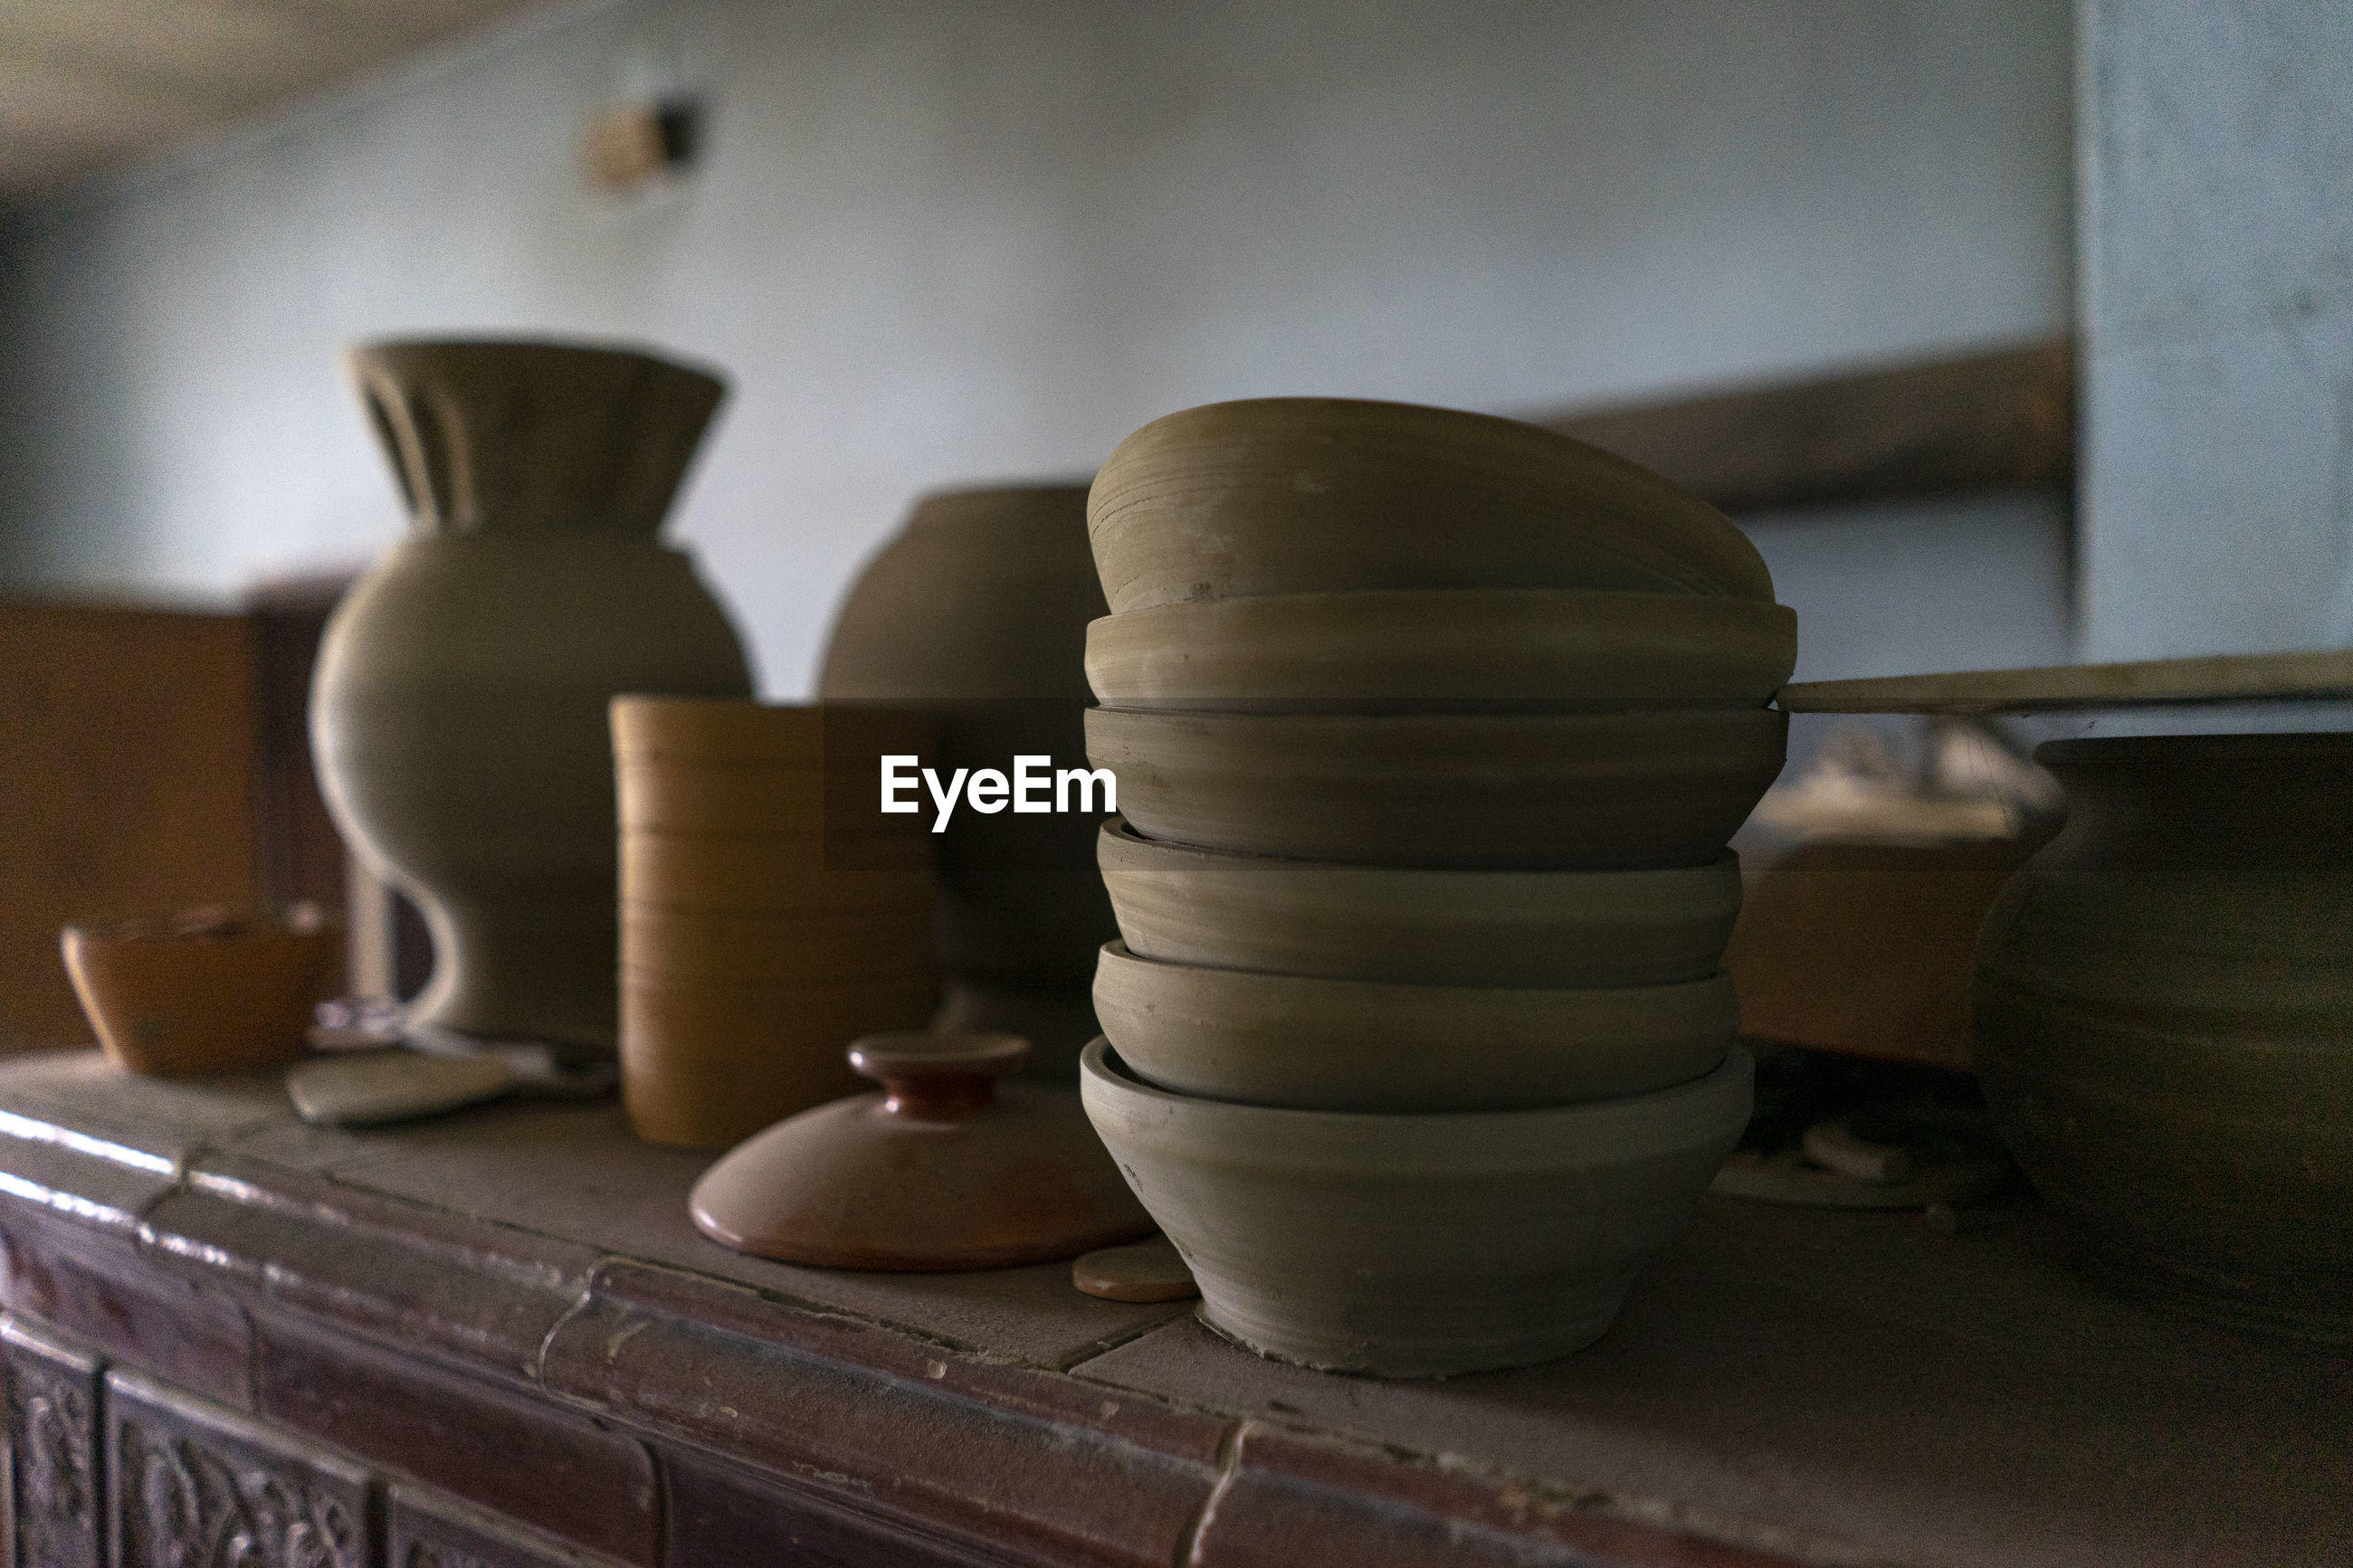 Close-up of ceramic bowls on table